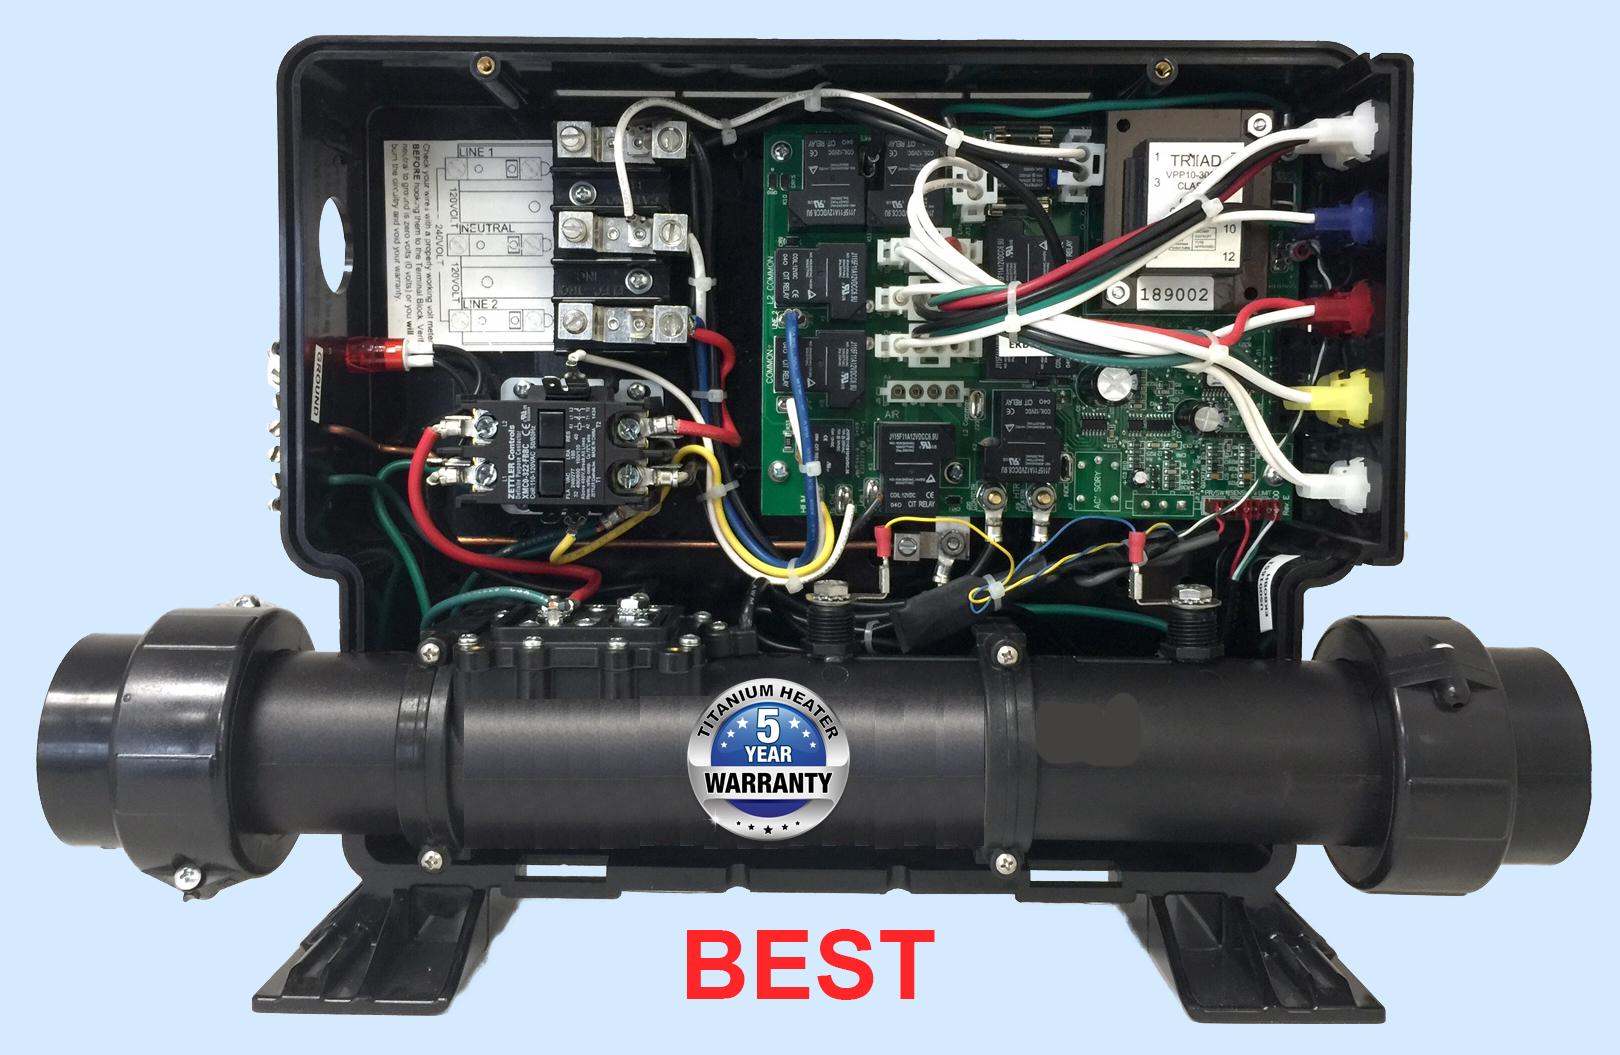 USC_CosmoHeat_Warranty_Open_best $299 95 direct replacement for balboa spa control $299 95 direct nordic hot tub wiring diagrams at readyjetset.co